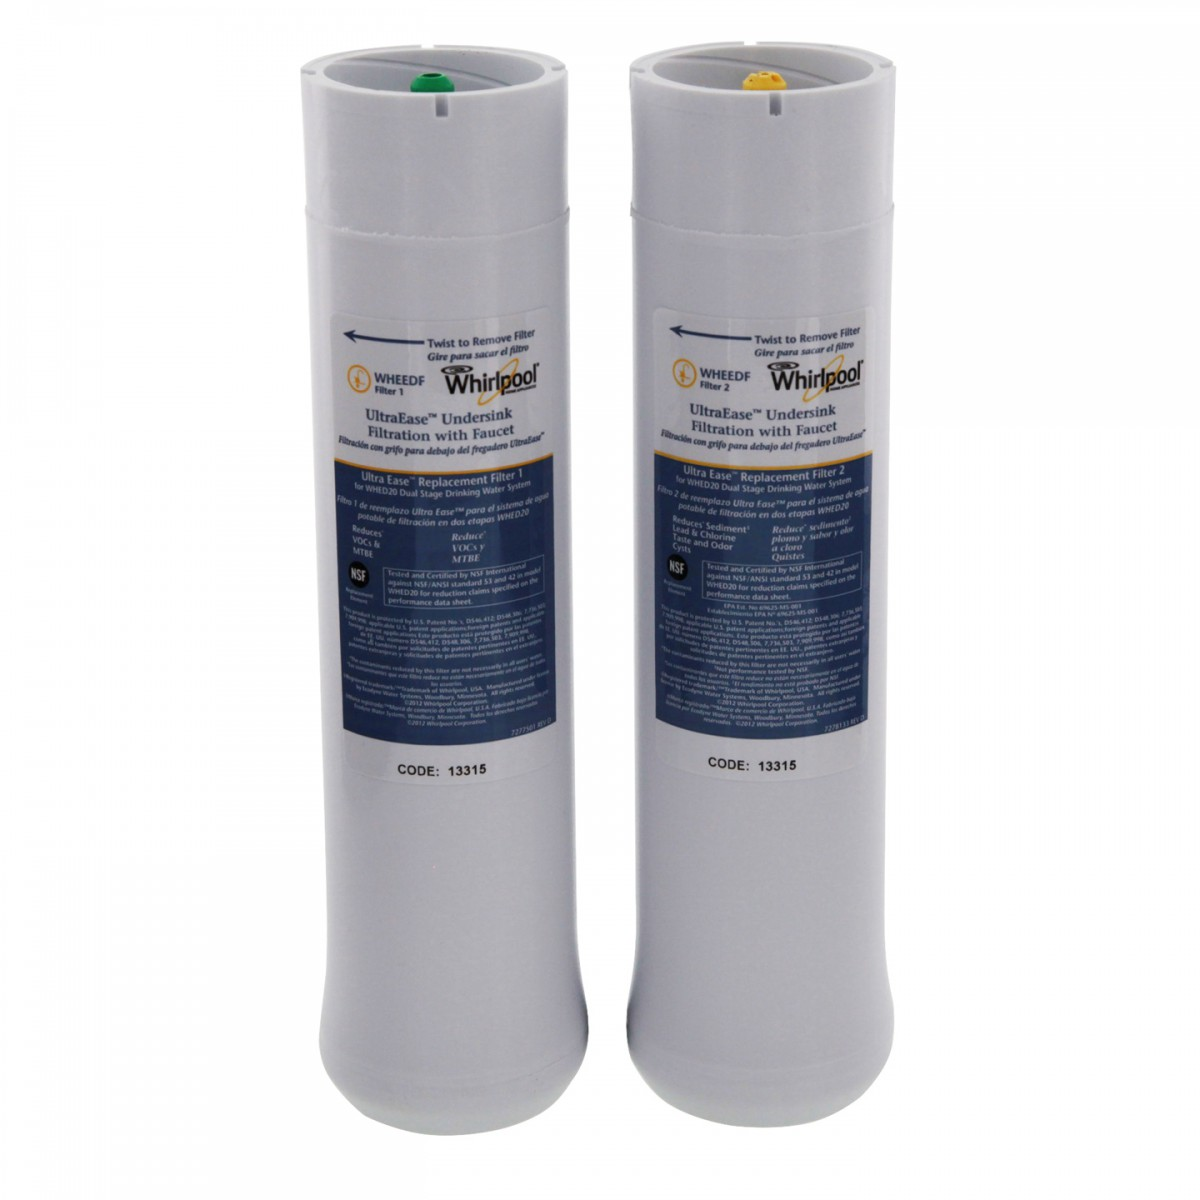 Nsf Certified Water Filter Whirlpool WHEEDF UltraEase Replacement Filter Pack